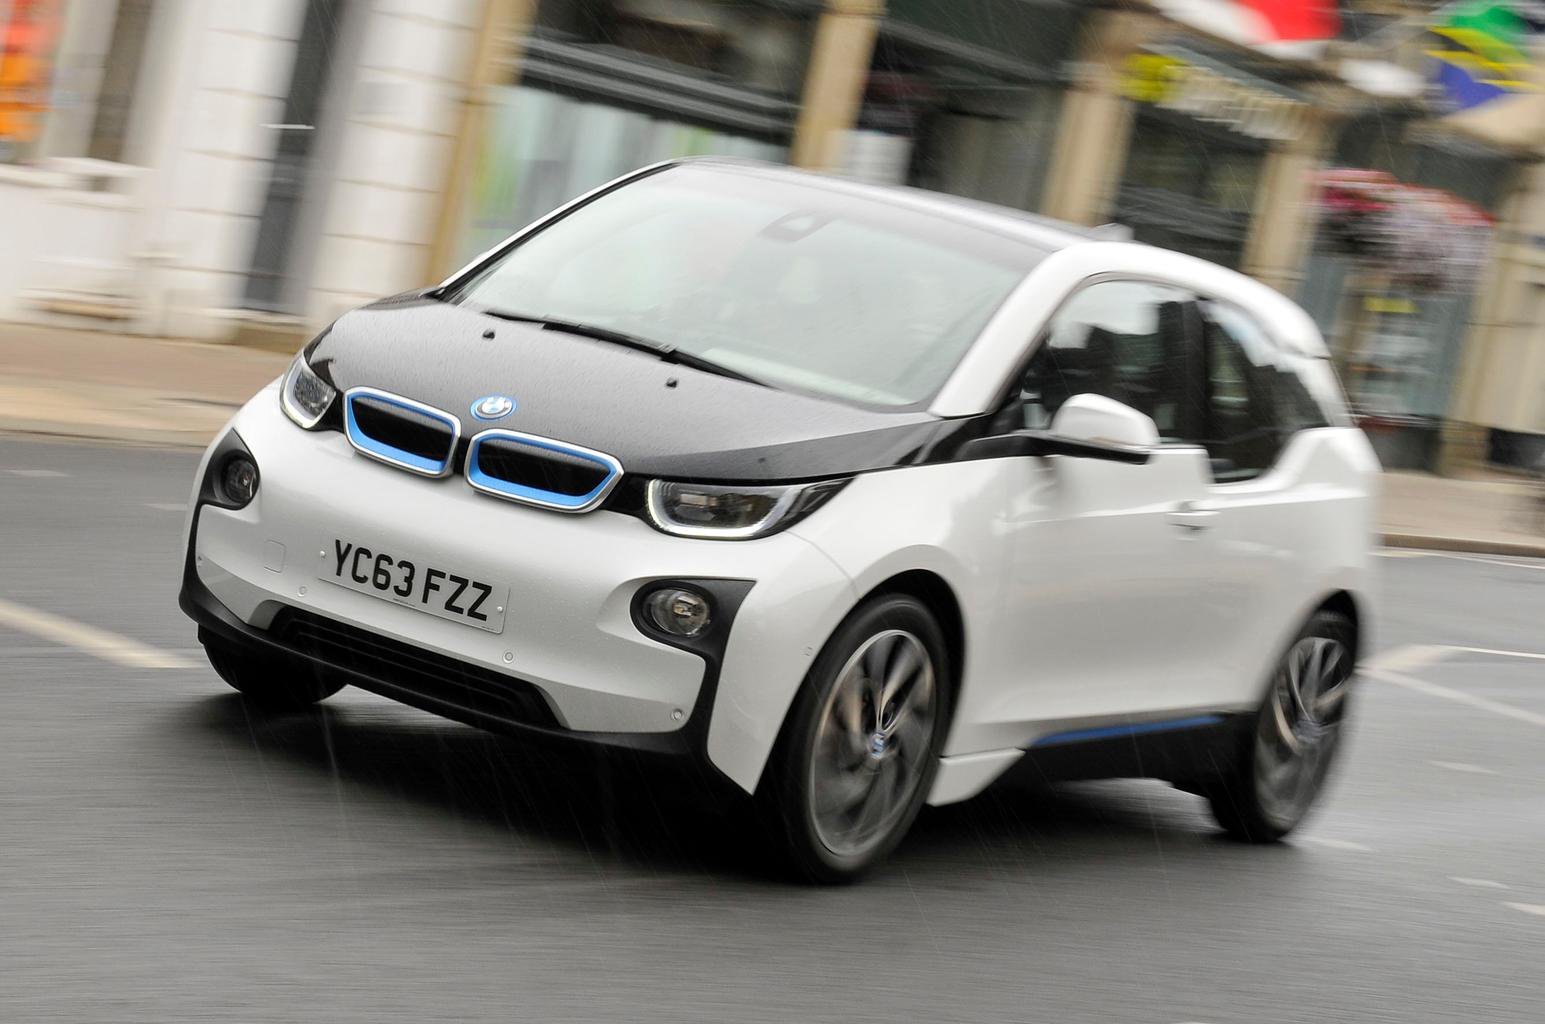 Used test: BMW i3 vs Volkswagen e-Golf